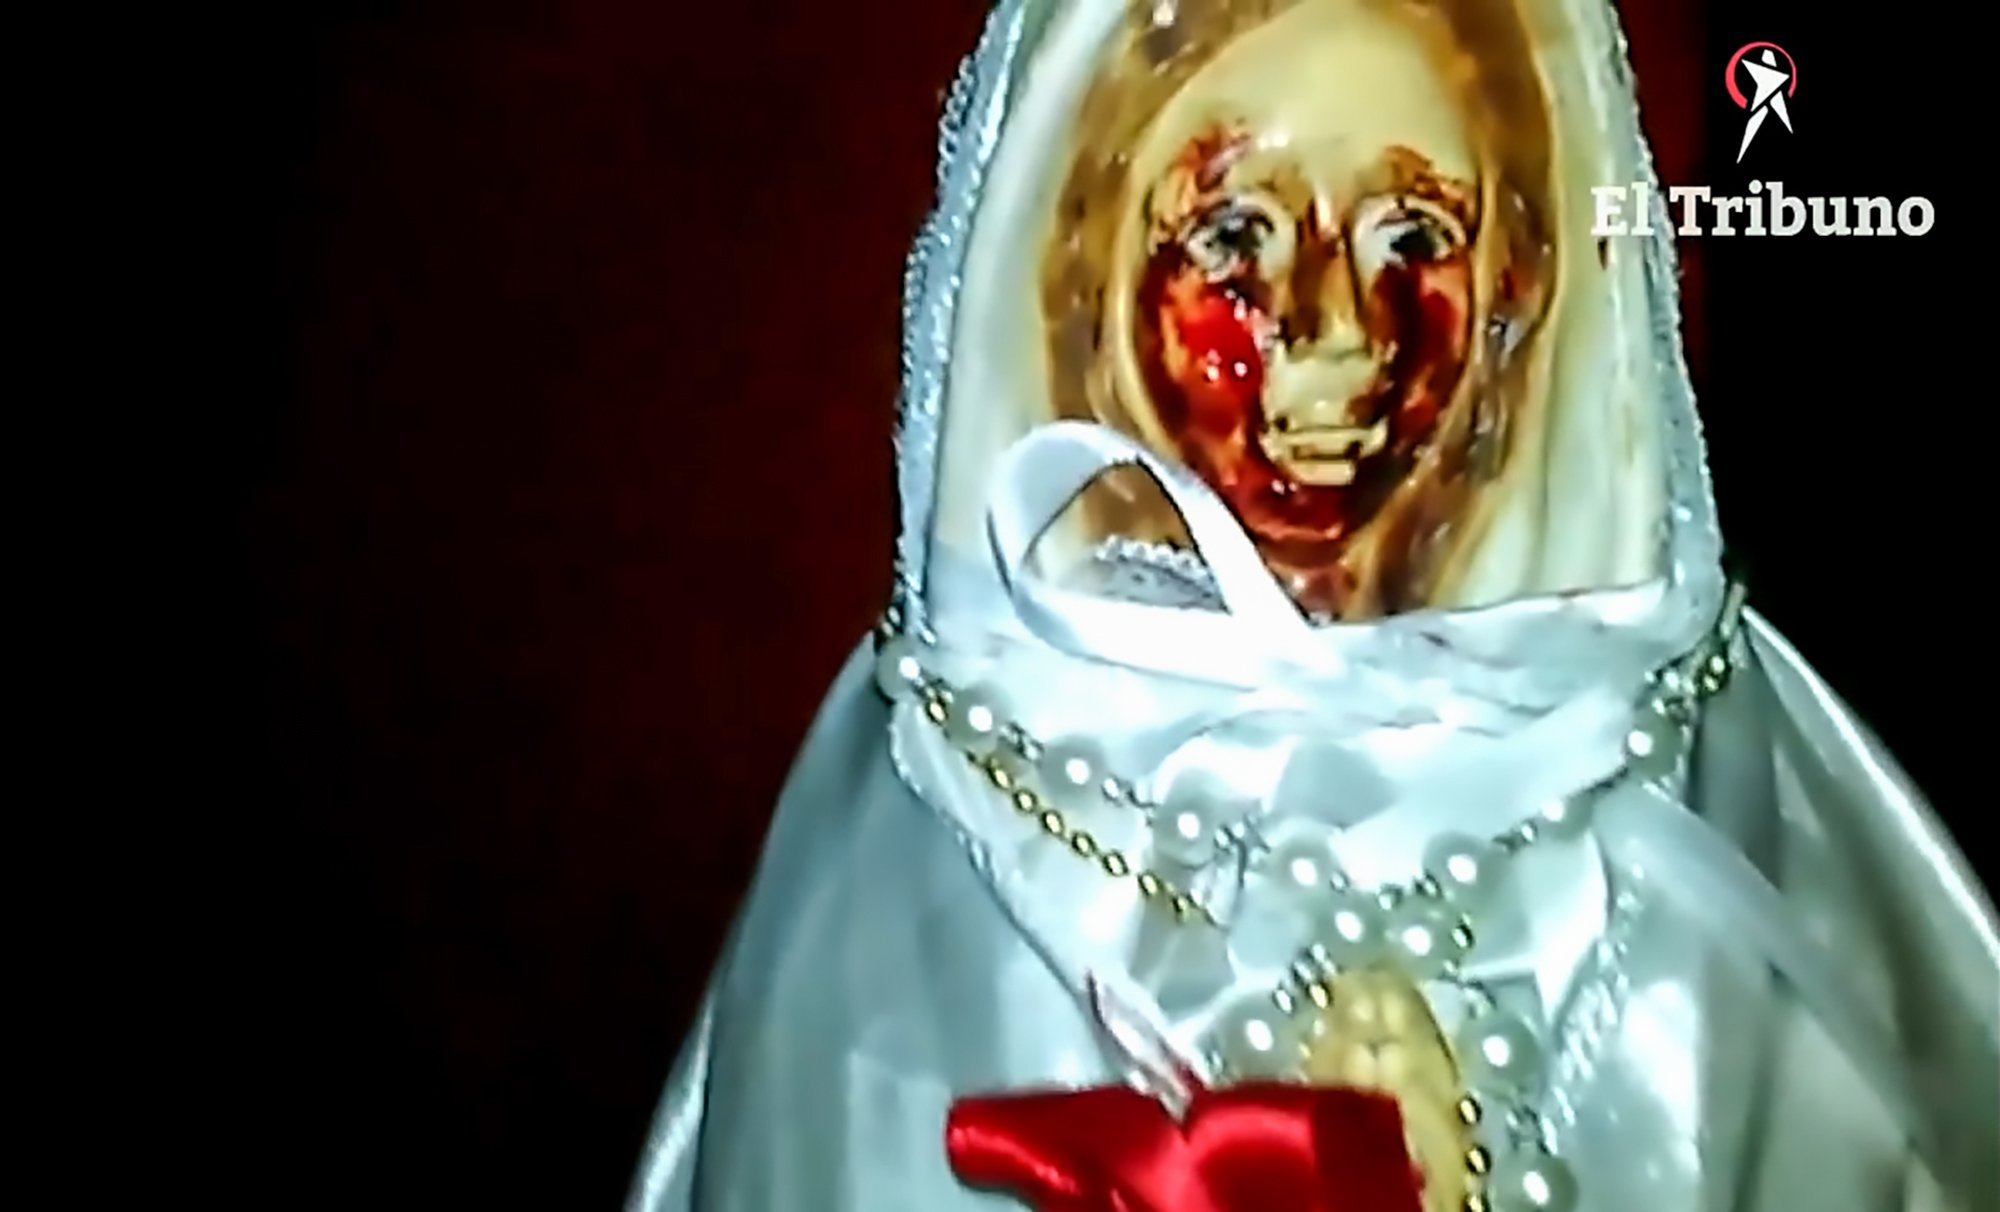 Virgin Mary statue filmed 'crying tears of blood' in Argentina